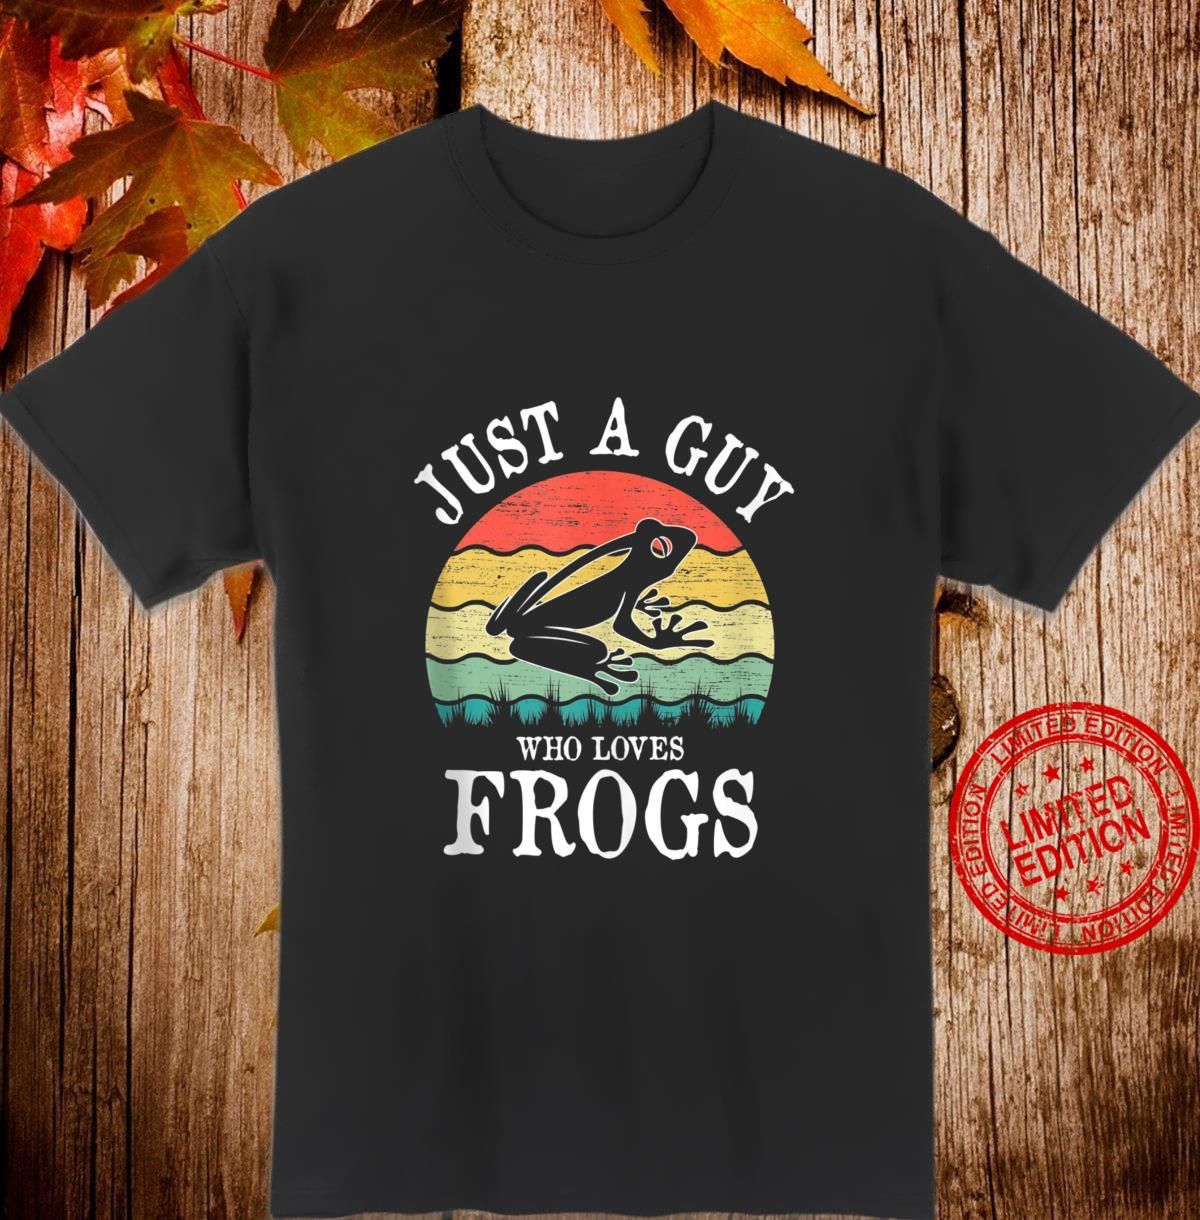 Just A Guy Who Loves Frogs Shirt